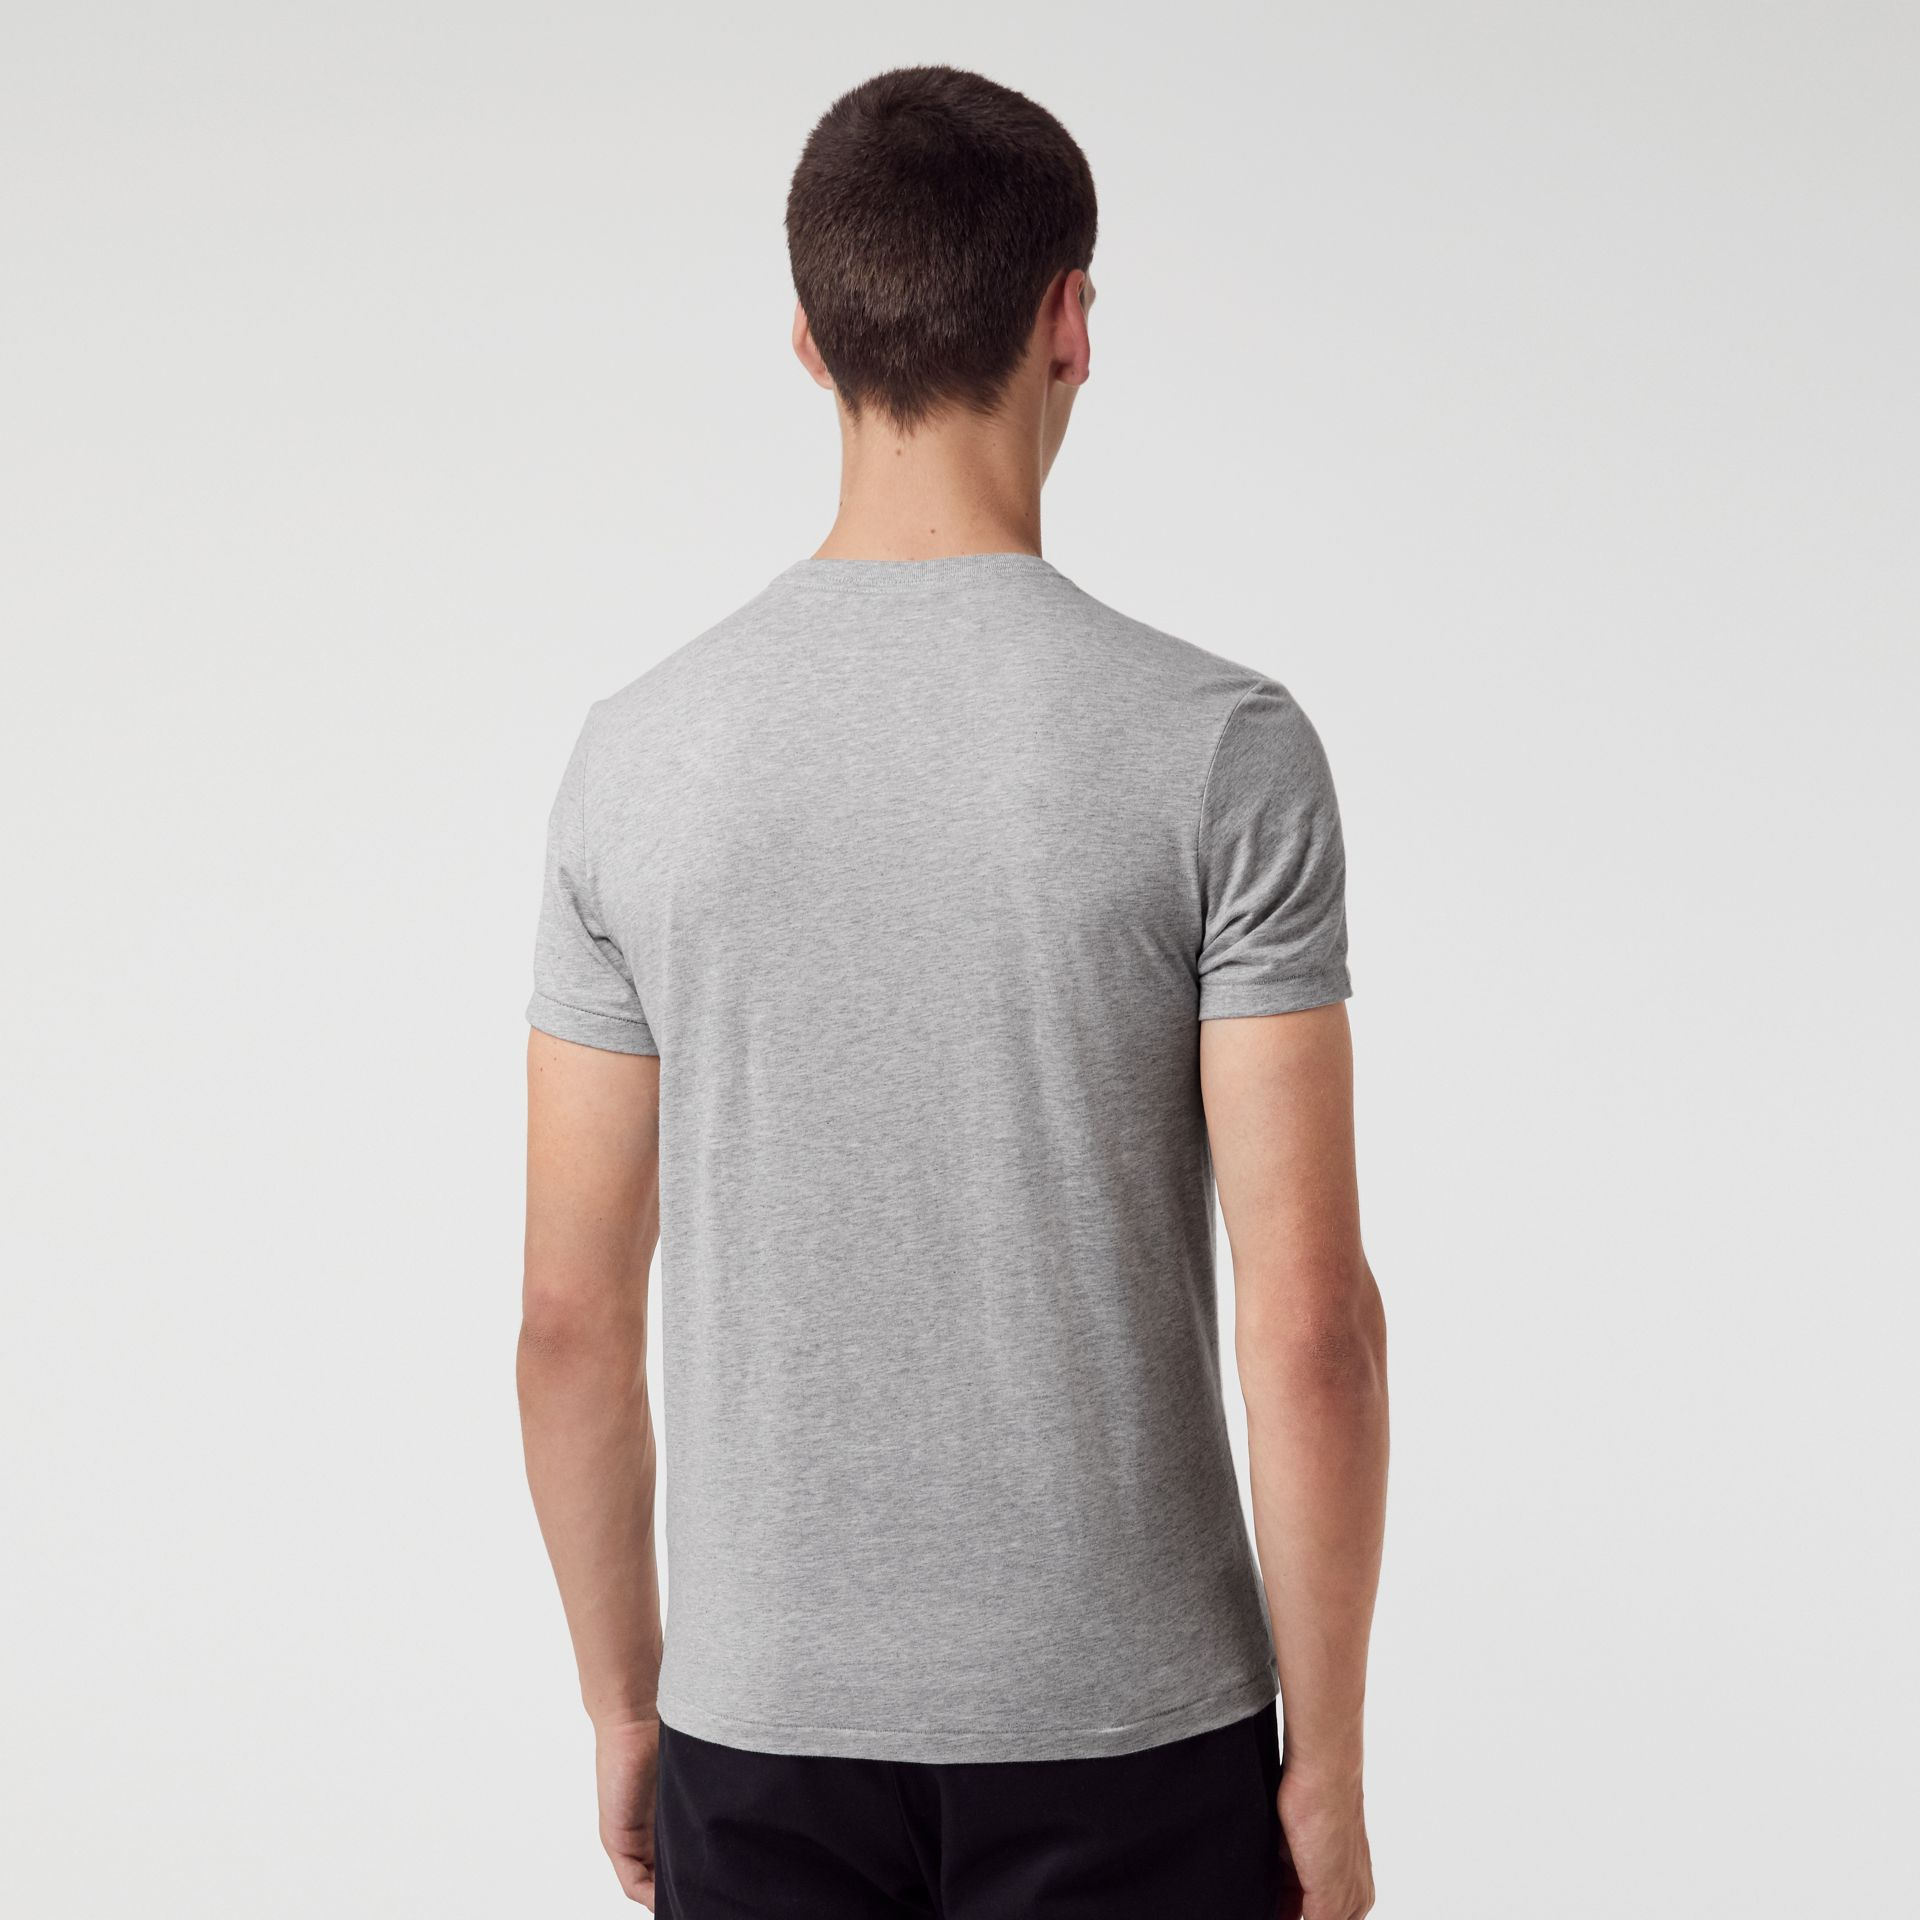 Cotton Jersey V-neck T-shirt in Pale Grey Melange - Men | Burberry - gallery image 2